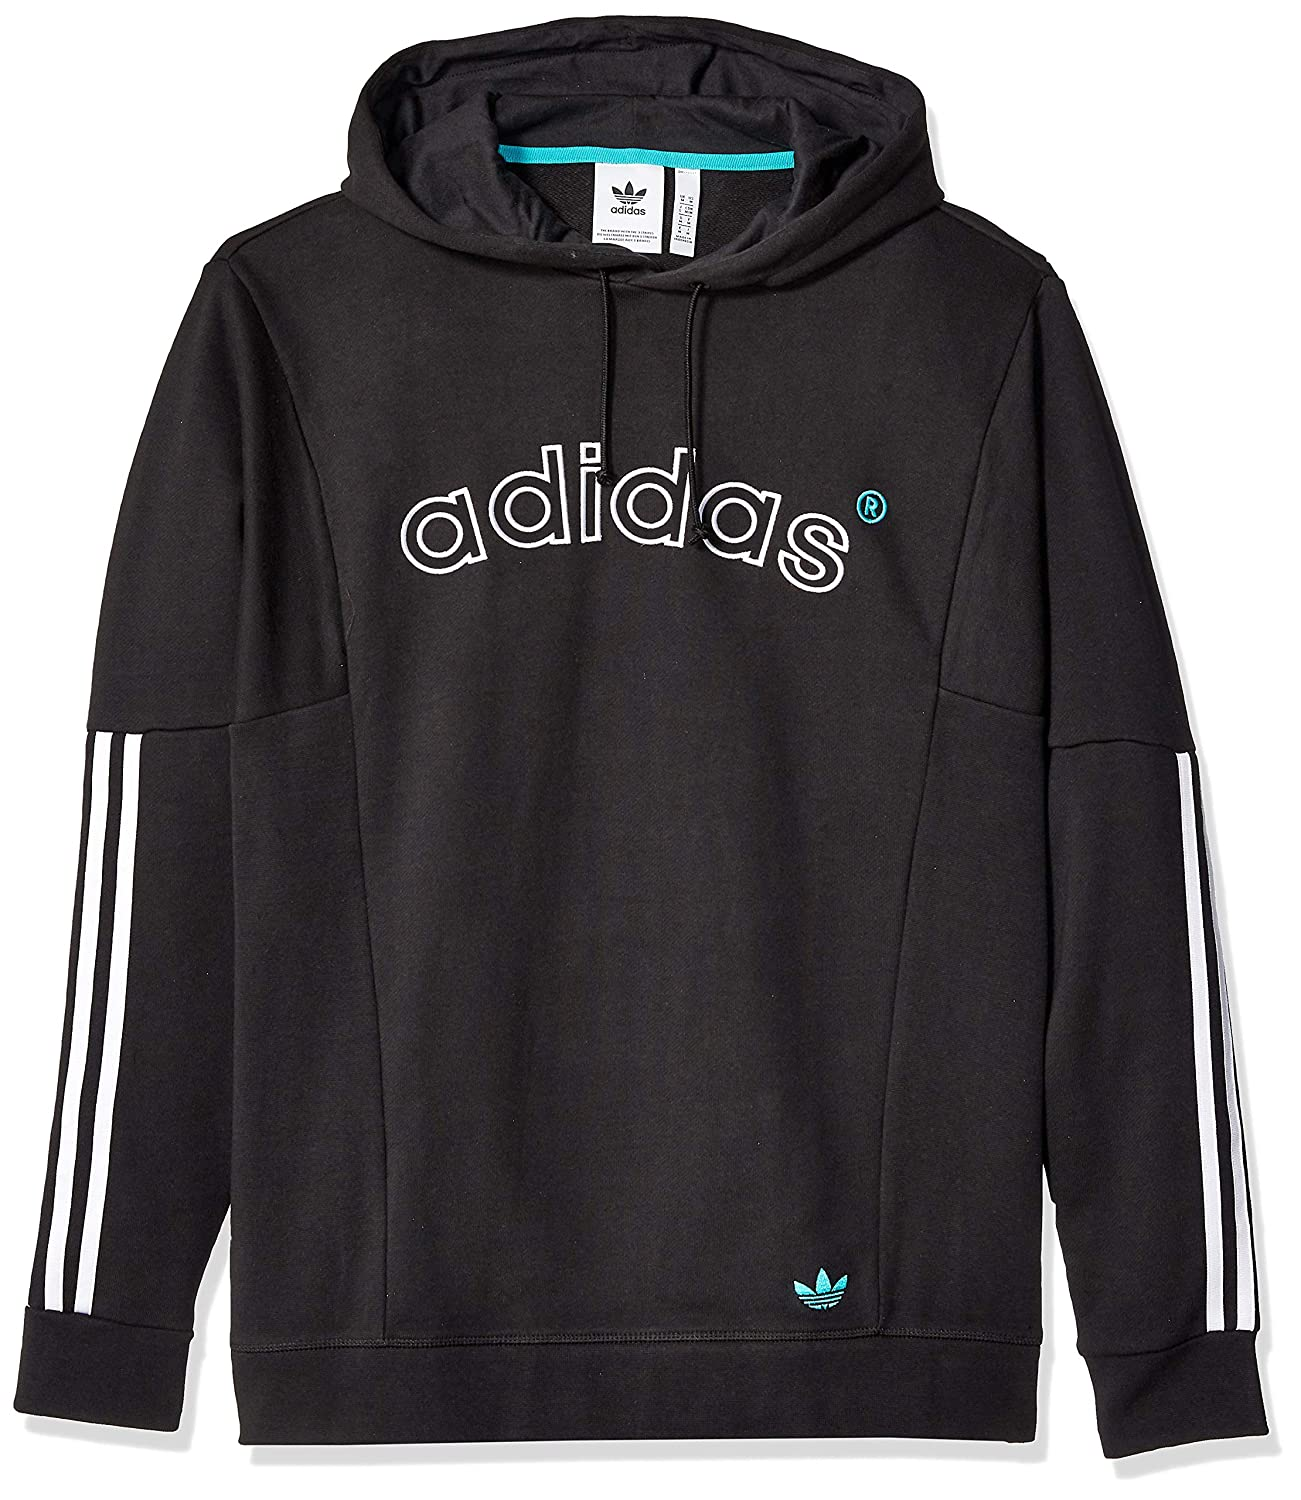 Originals At Men's Archive Hoodie Clothing Sweat Amazon Adidas WHIYED29